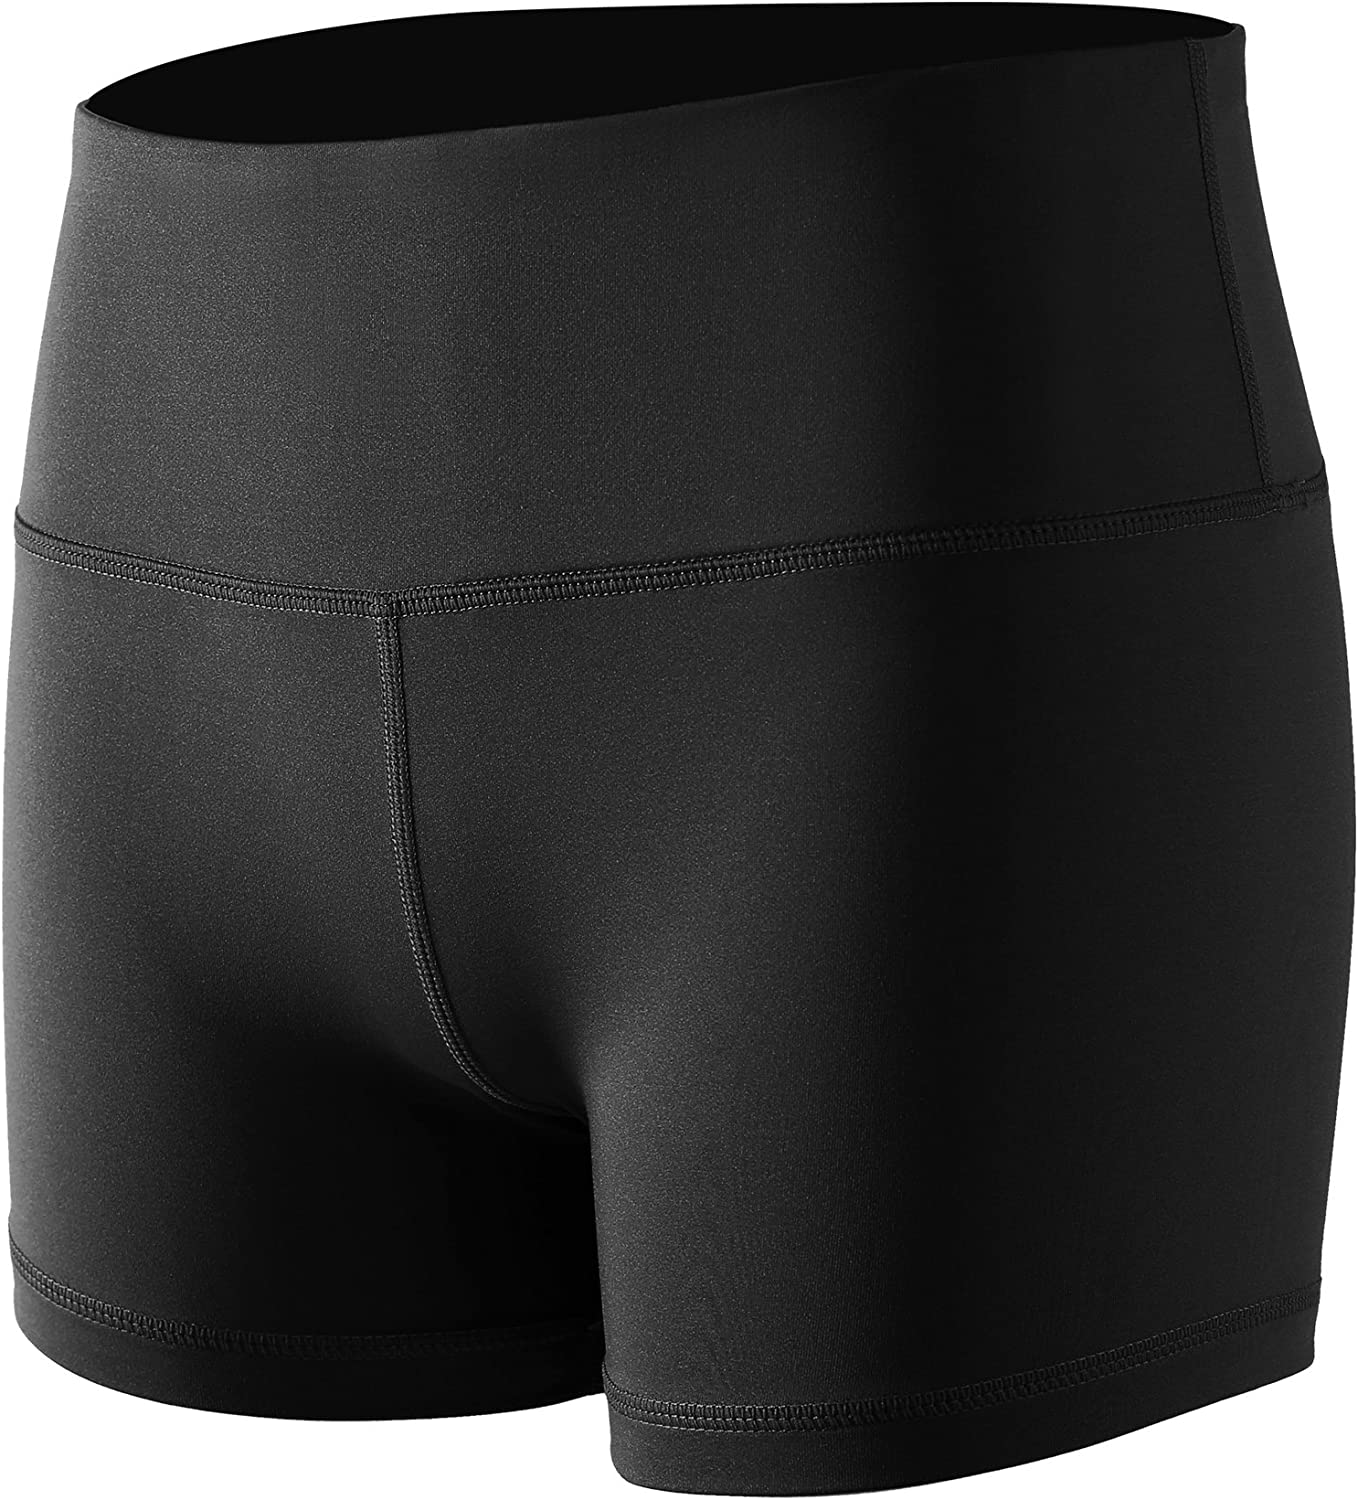 Cadmus Womens High-Waist Compression Athletic Workout Running Shorts with Pocket